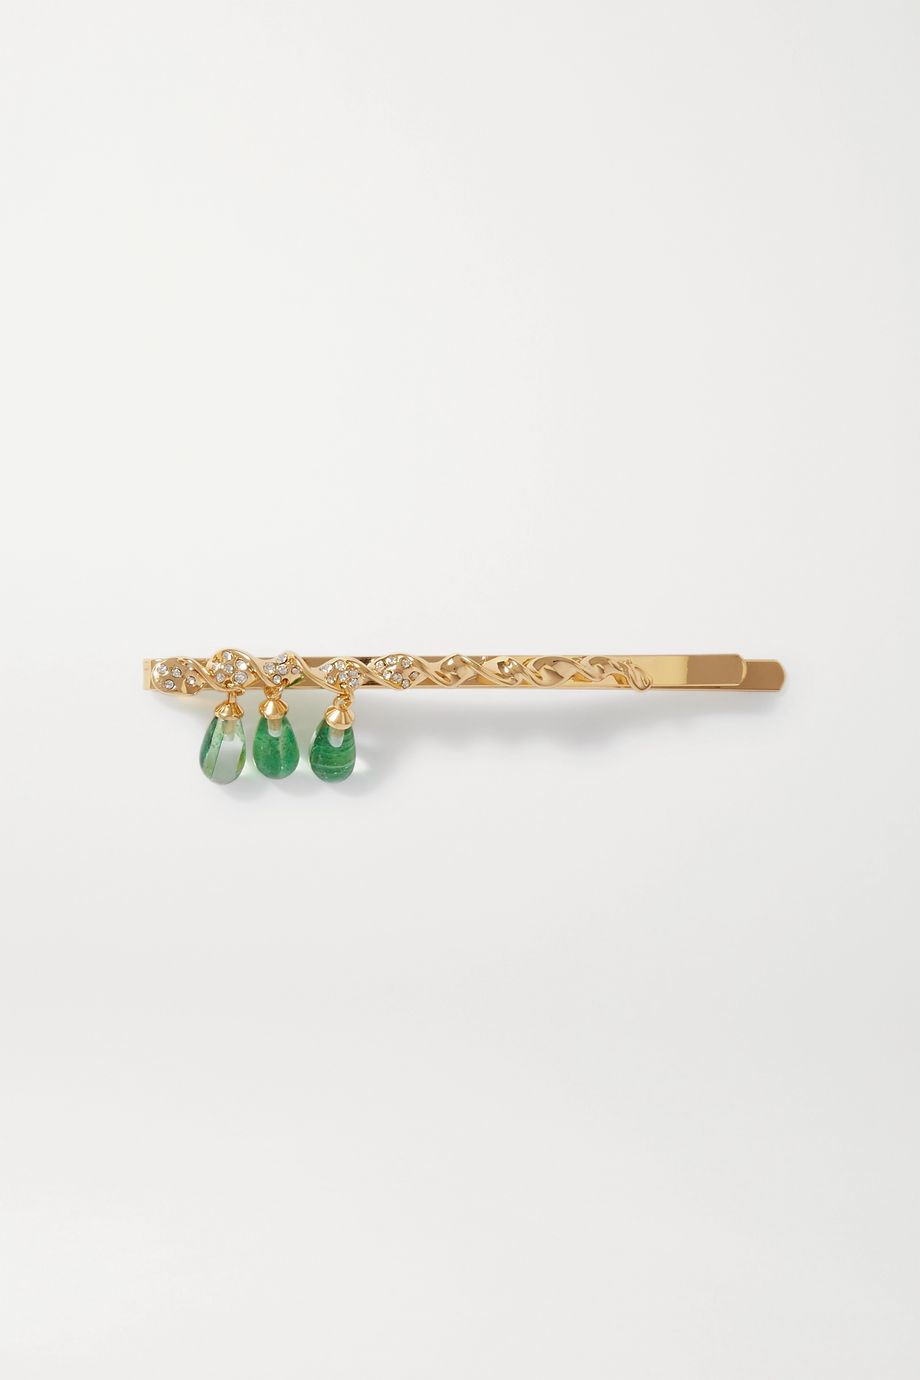 Ejing Zhang Dante gold-plated, resin and crystal hair slide